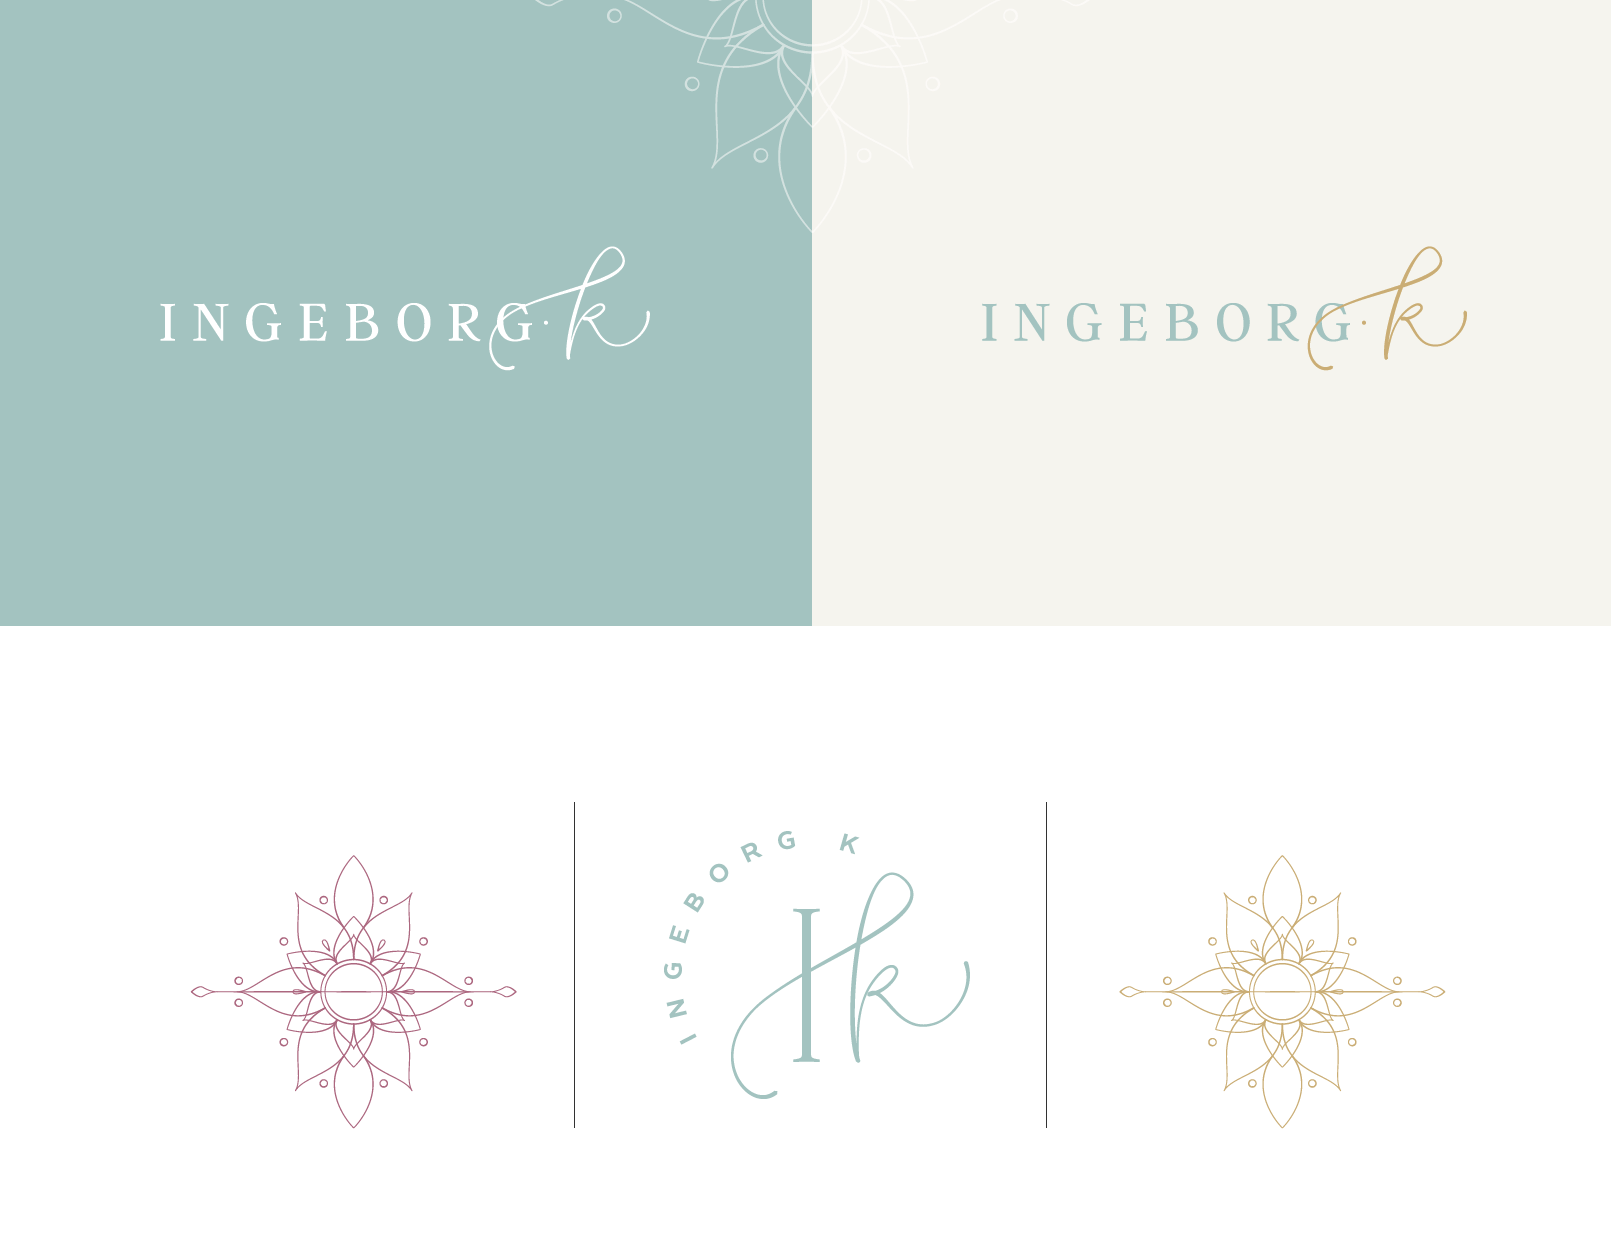 yoga instructor brand design by Function Creative Co.